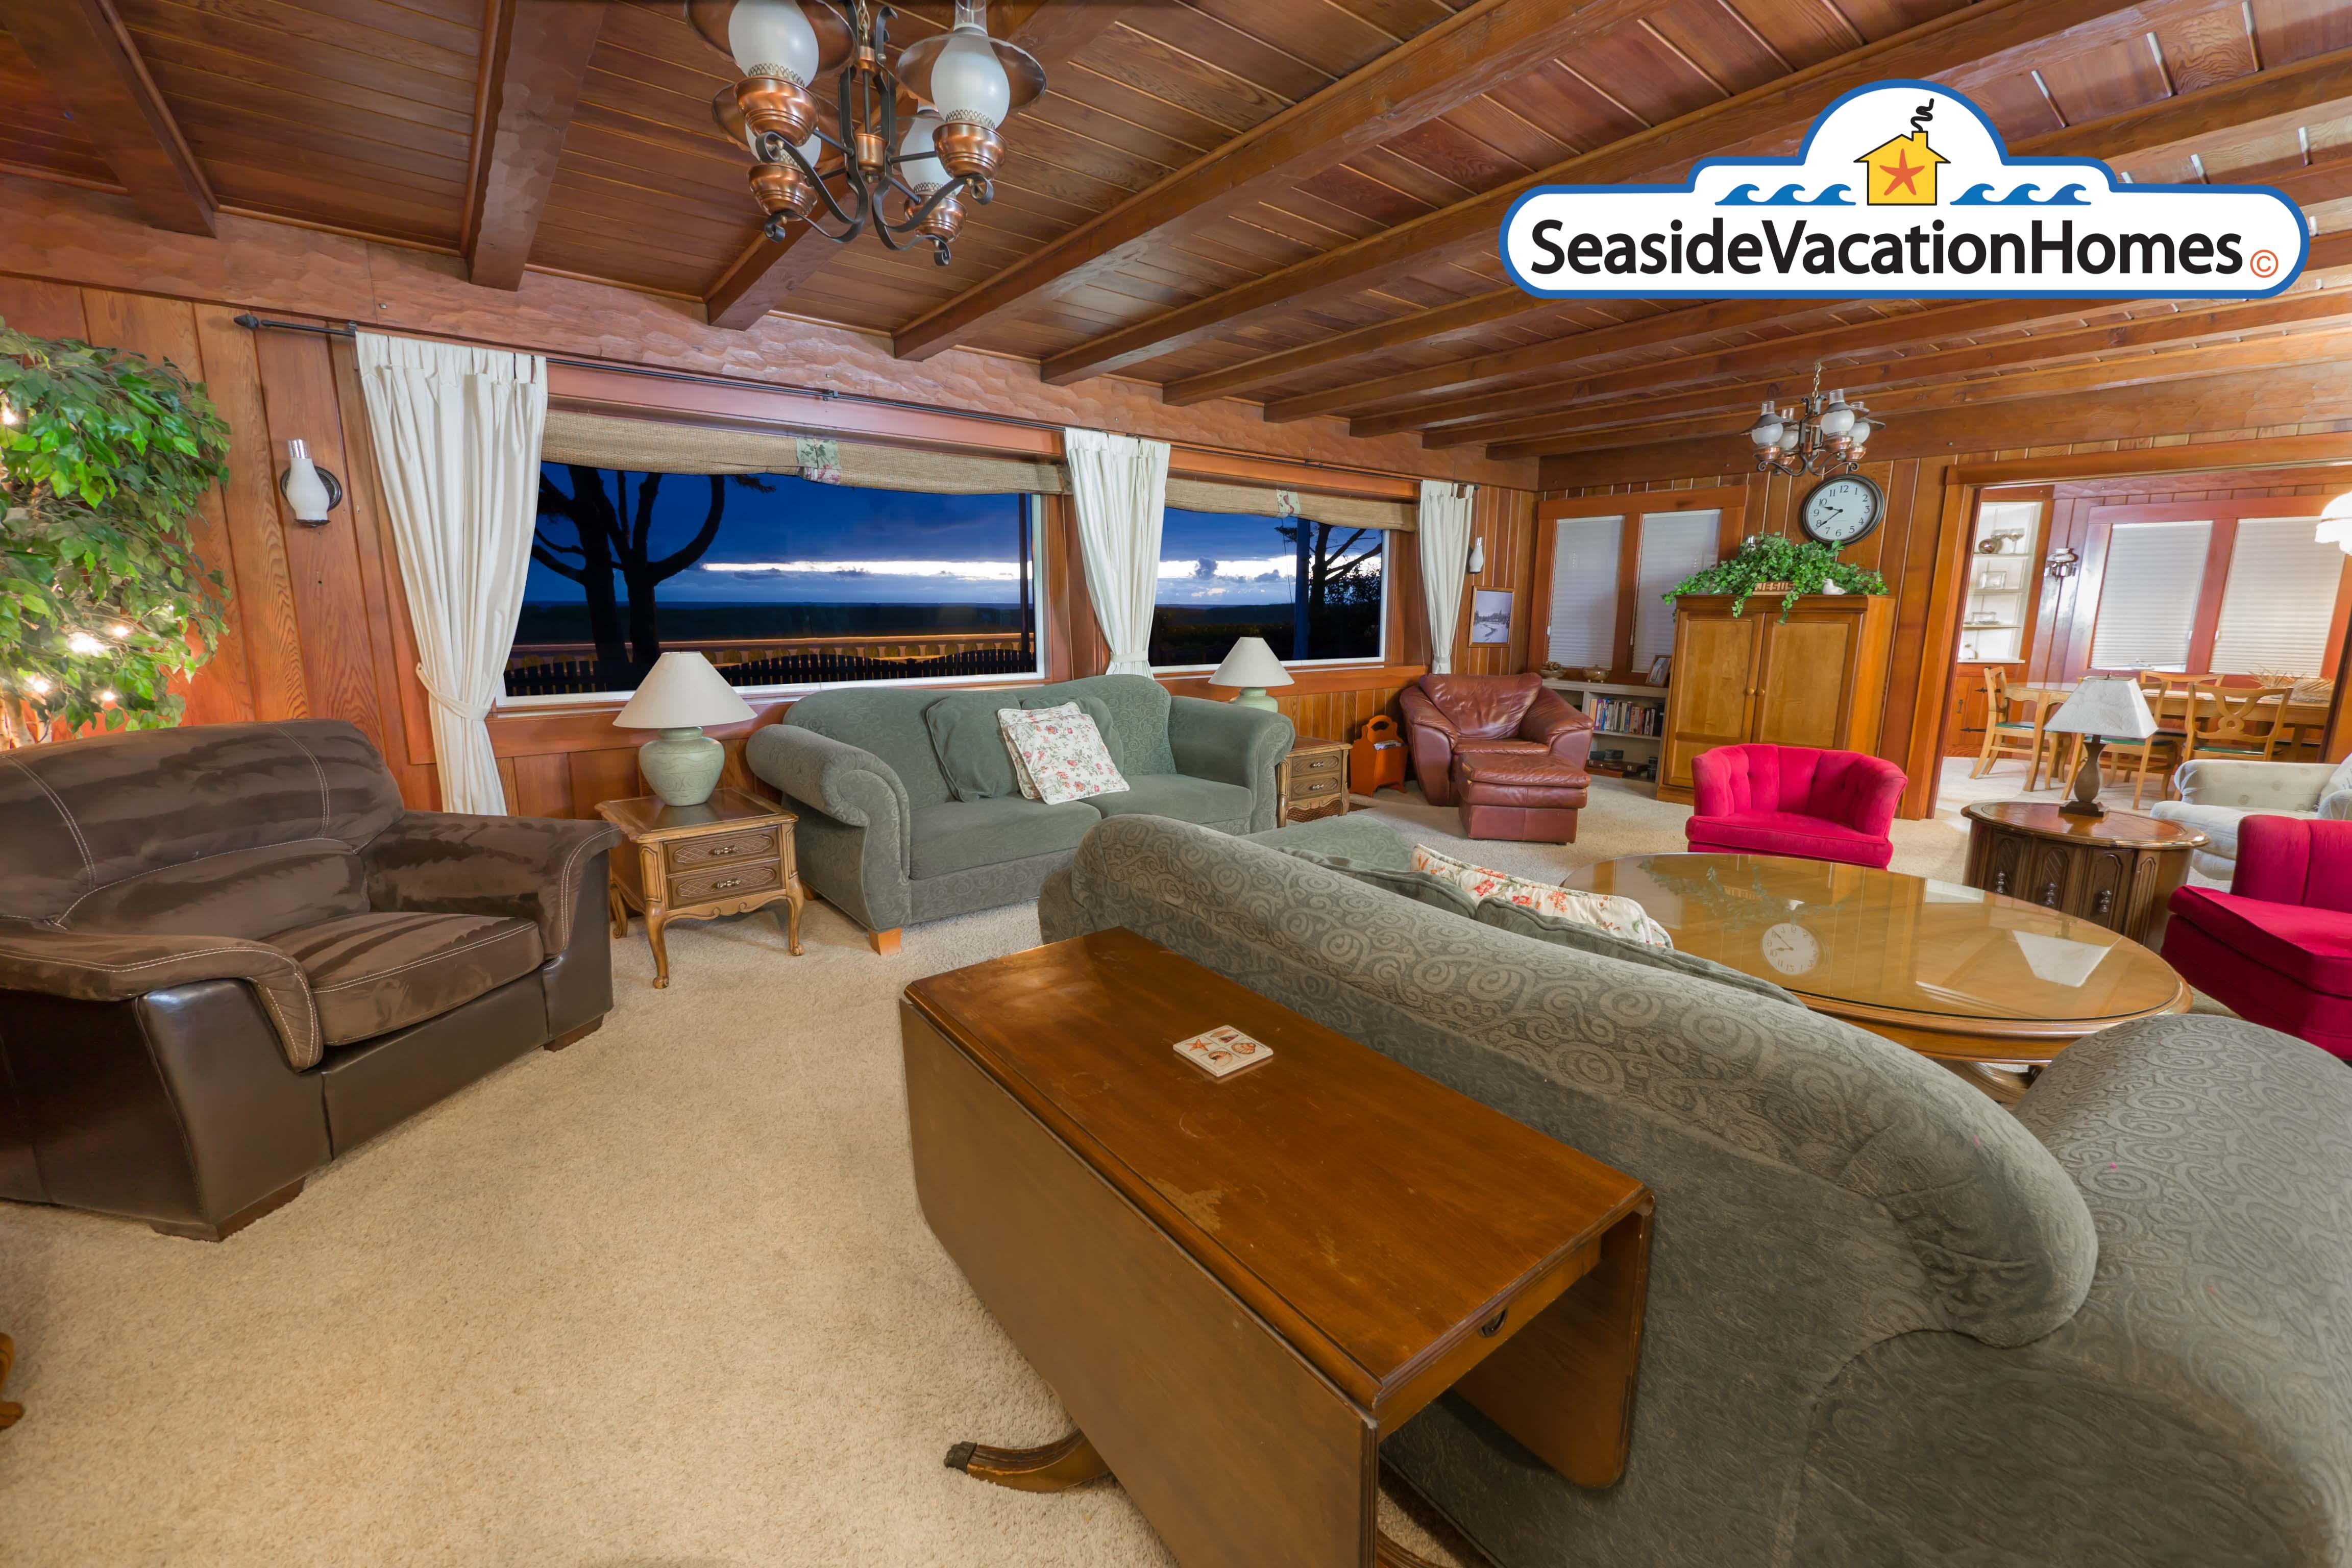 Family vacation home in Seaside Beach Oregon